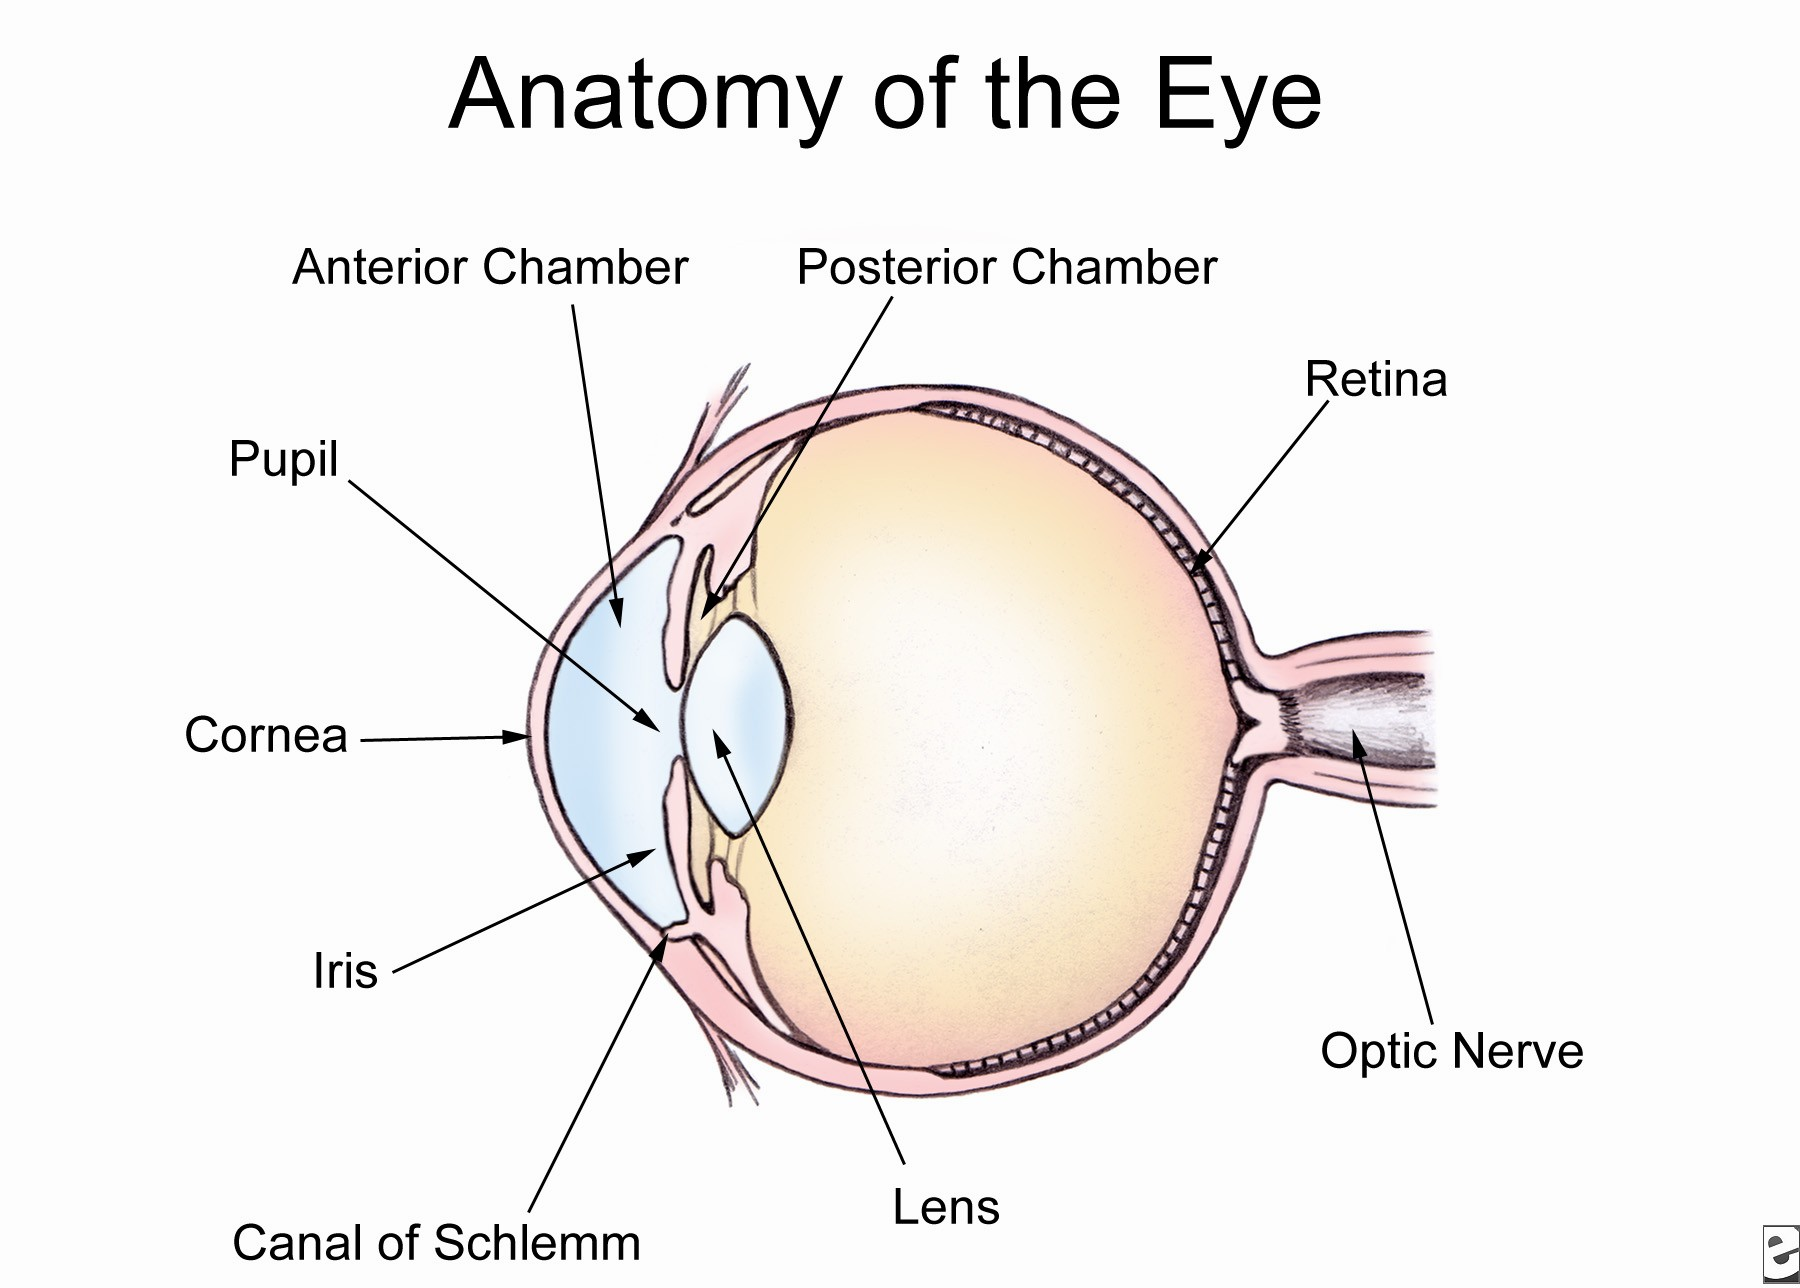 canine eye diagram how to wire a hot tub human anatomy quiz